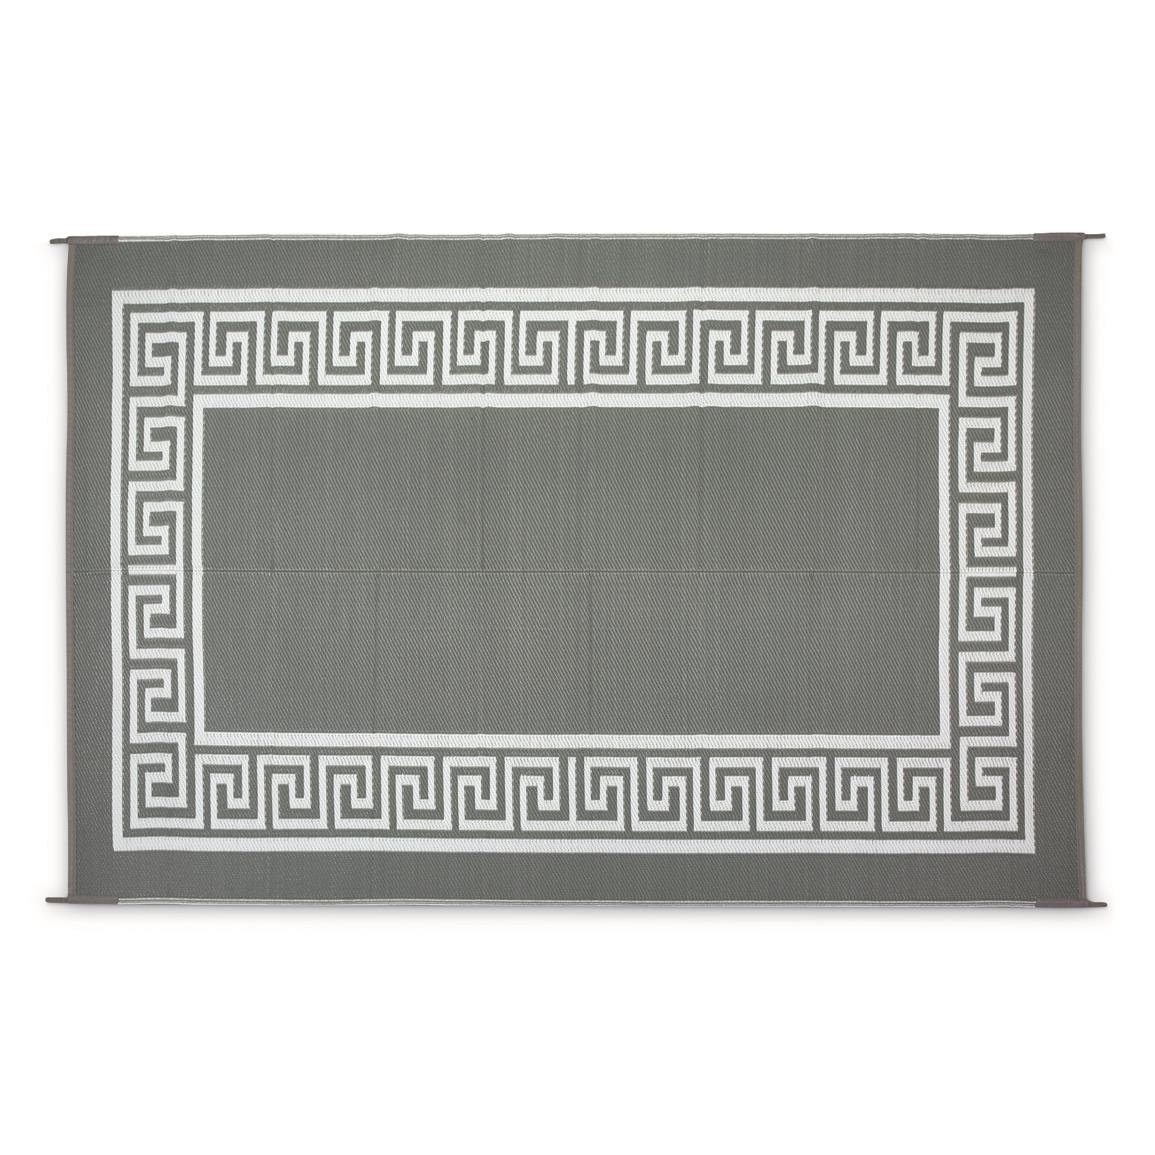 Guide Gear Outdoor Rug, Greek Key Border, Gray/White